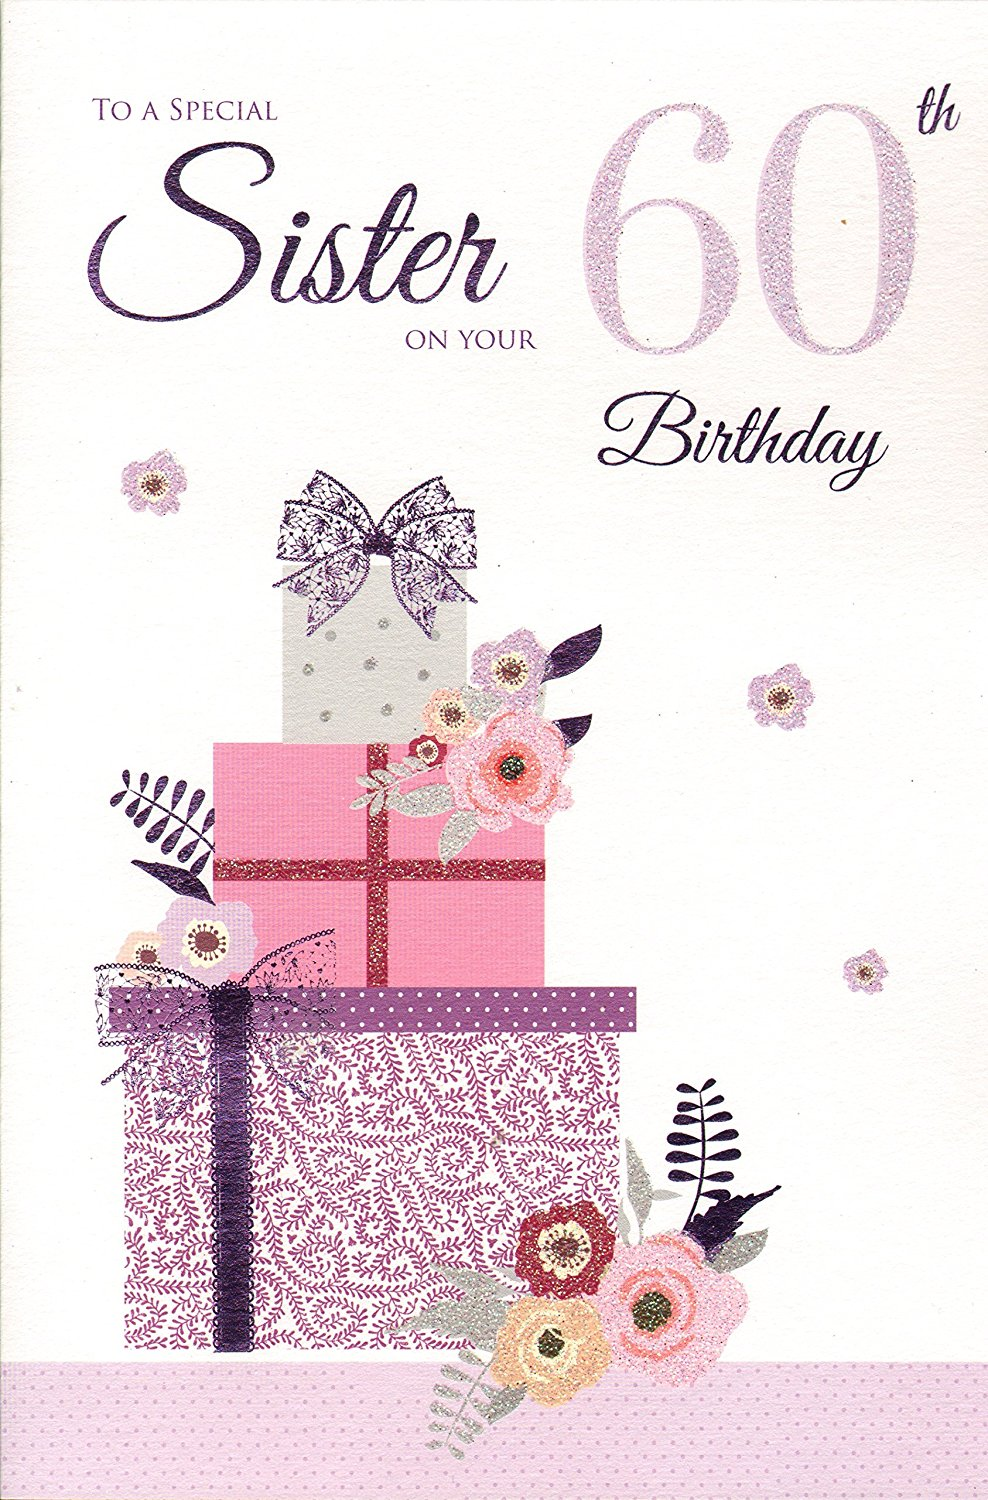 greeting cards for my sister birthday ; 91PcMkOWdiL